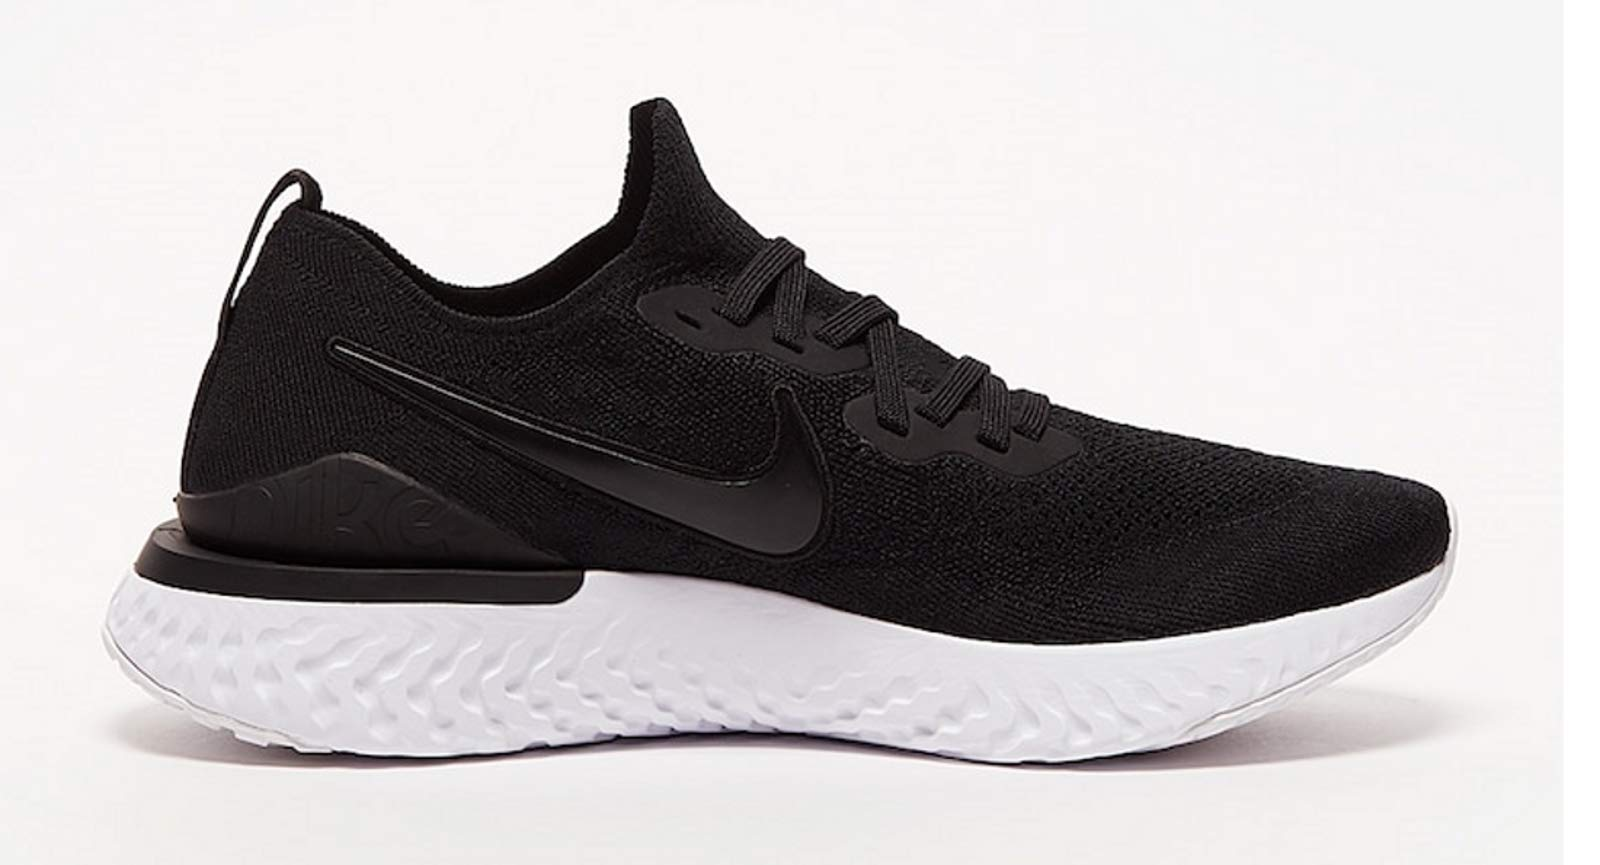 Nike Mens Epic React Flyknit 2 Running Shoes (Black/White/12 D